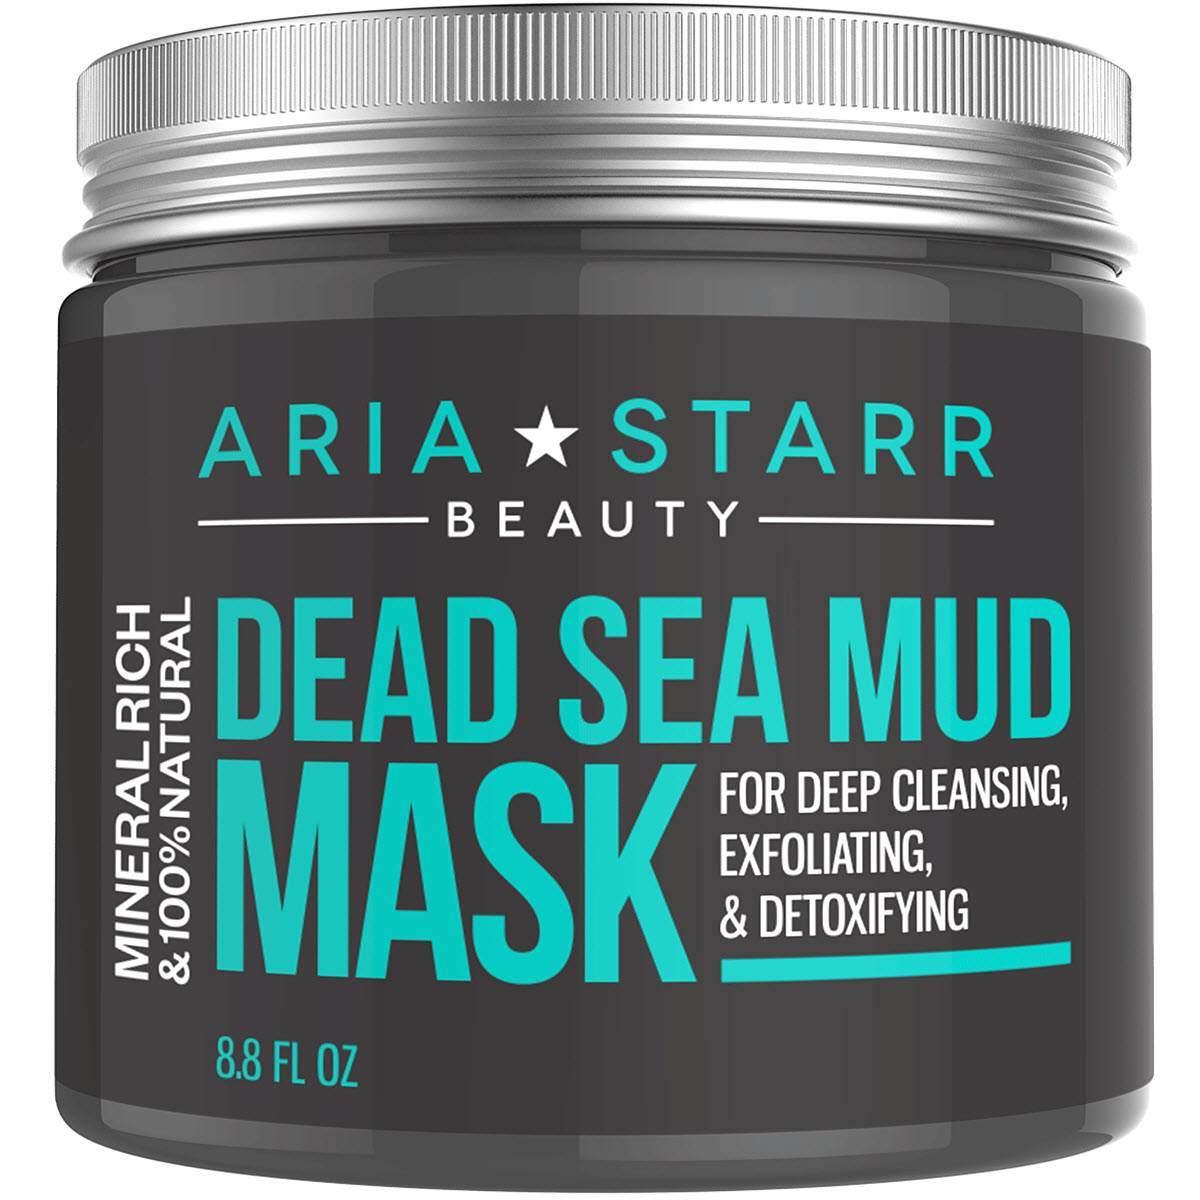 Aria Starr Dead Sea Mud Mask For Face, Acne, Oily Skin & Blackheads - Best Facial Pore Minimizer, Reducer & Pores Cleanser Treatment - 100% Natural For Younger Looking Skin 8.8oz